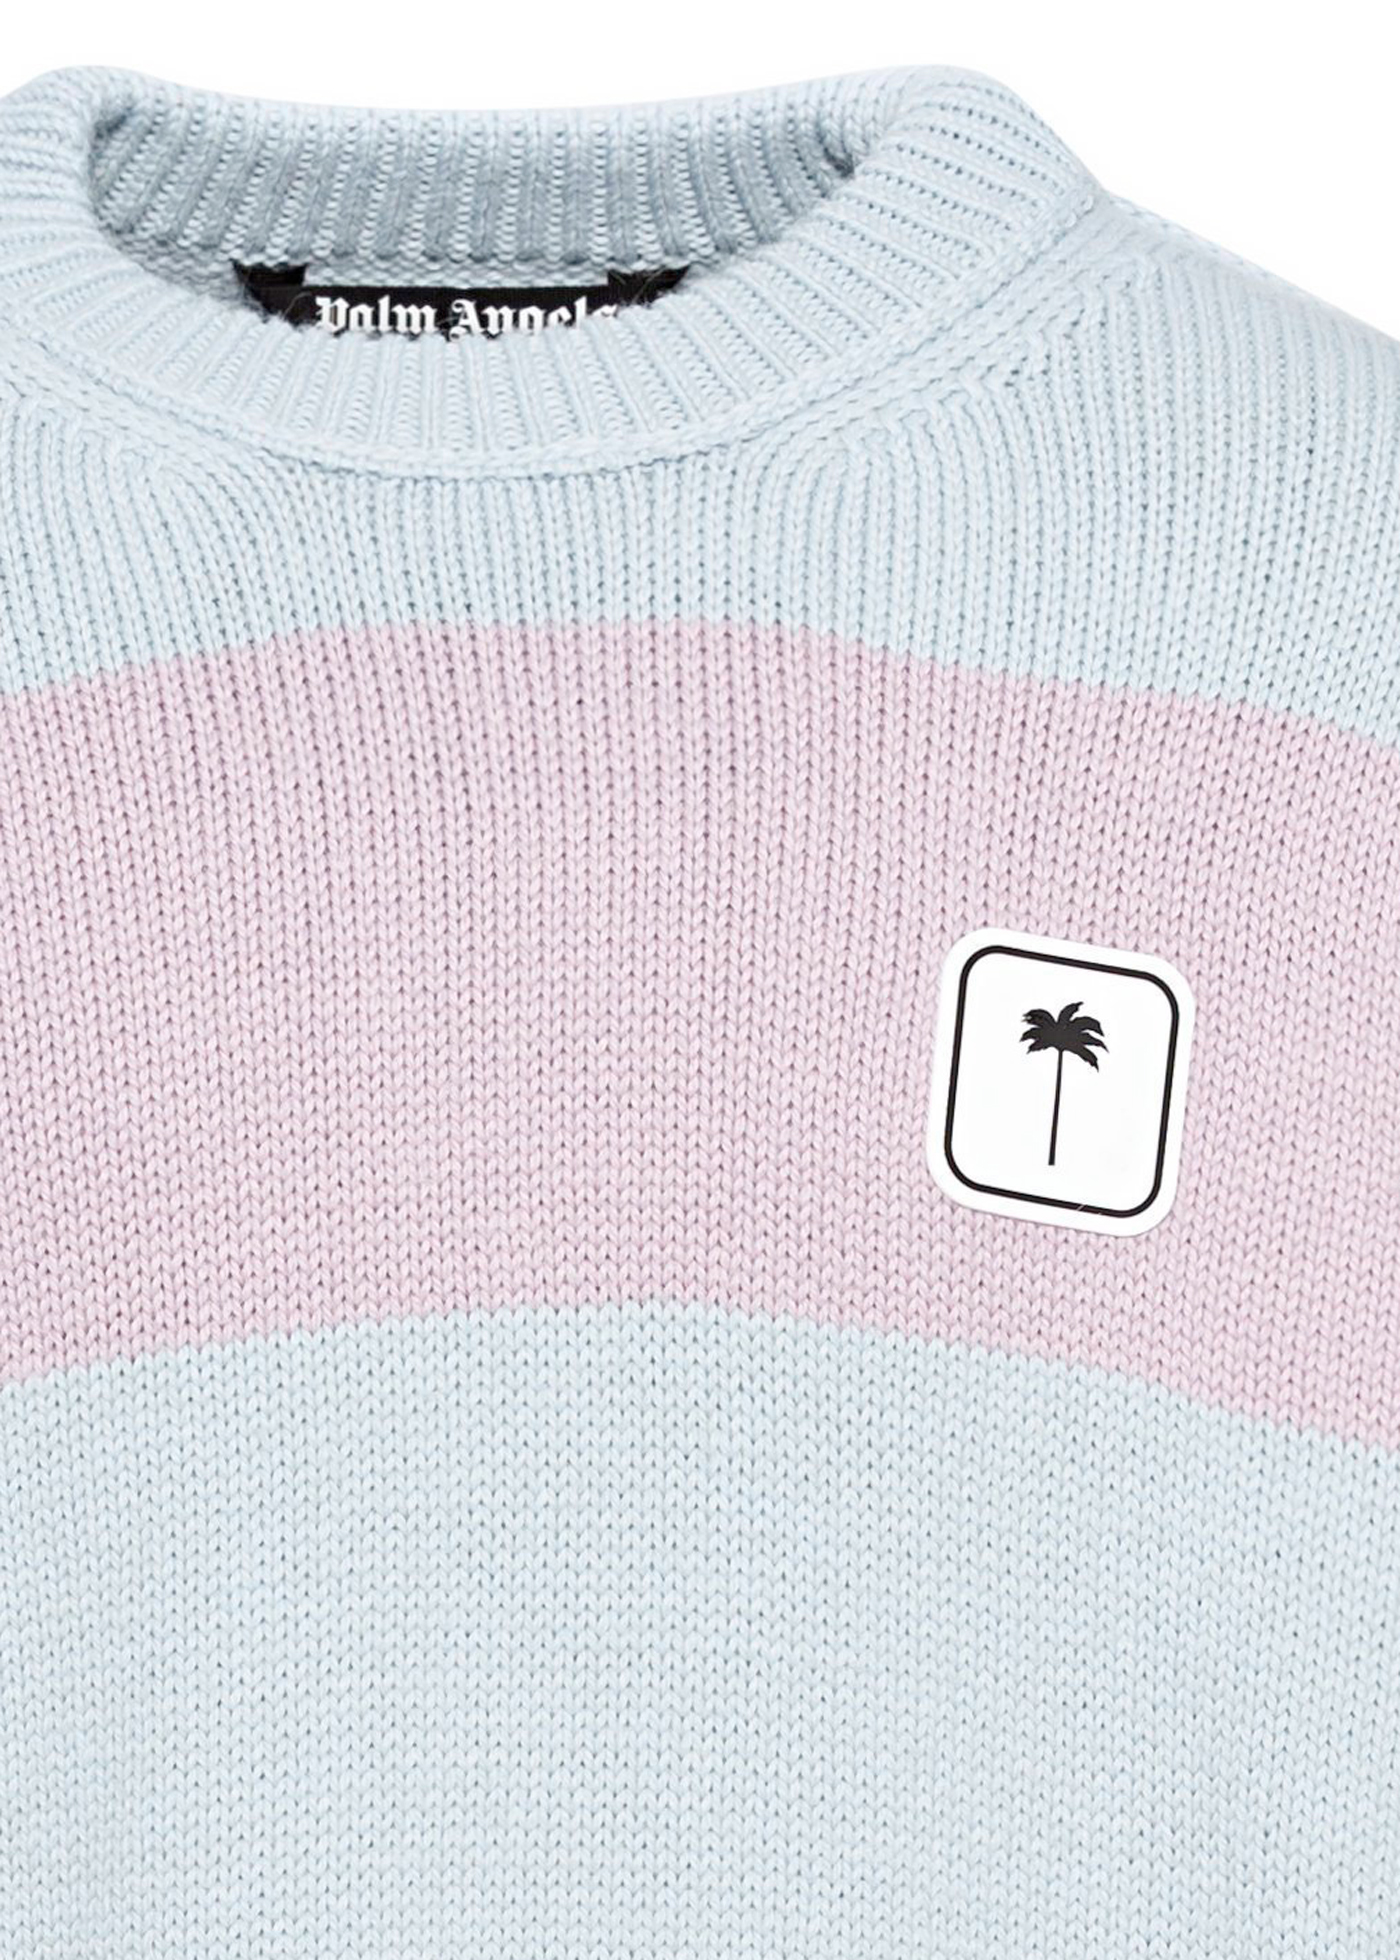 PXP STRIPY SWEATER image number 2